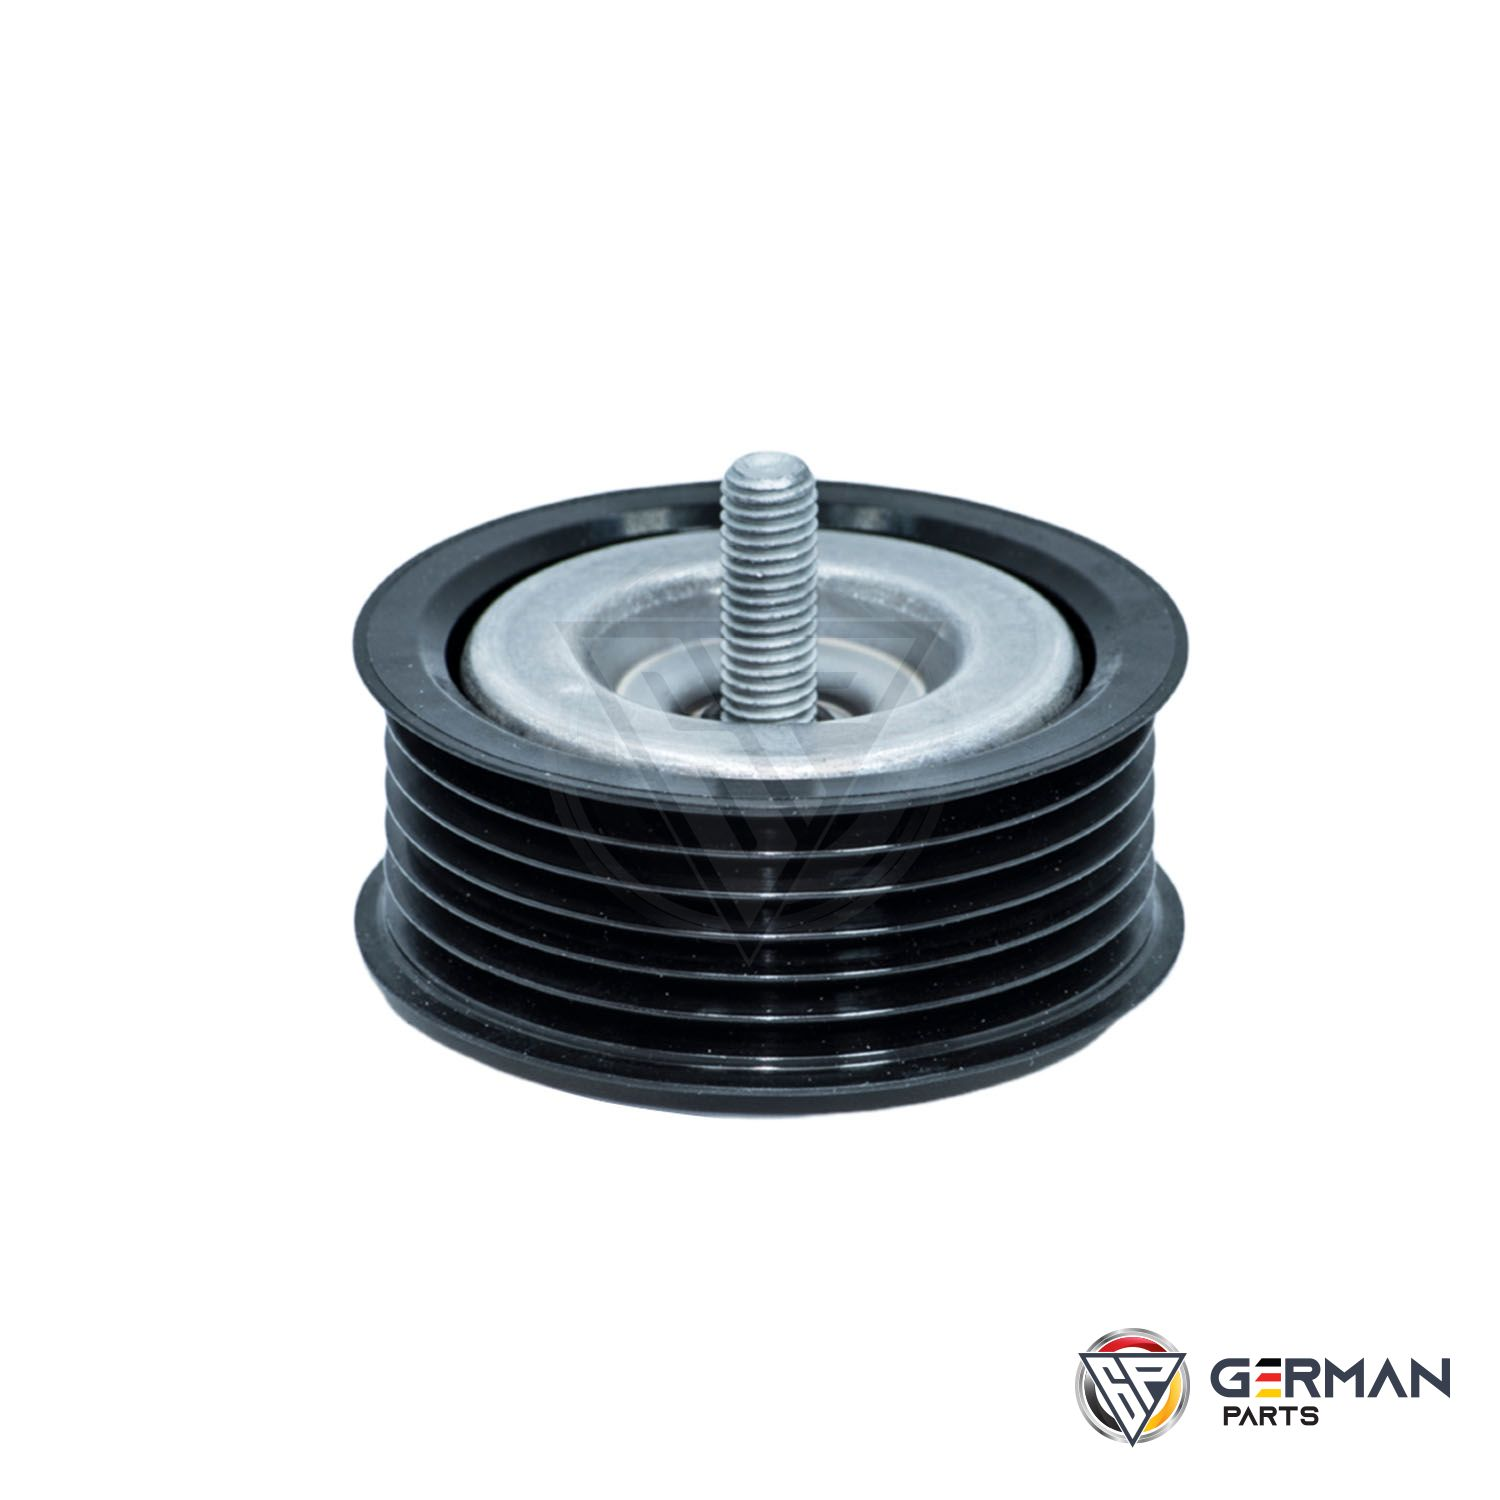 Buy Genuine Mercedes Benz Guide Pulley 0002021619 - German Parts